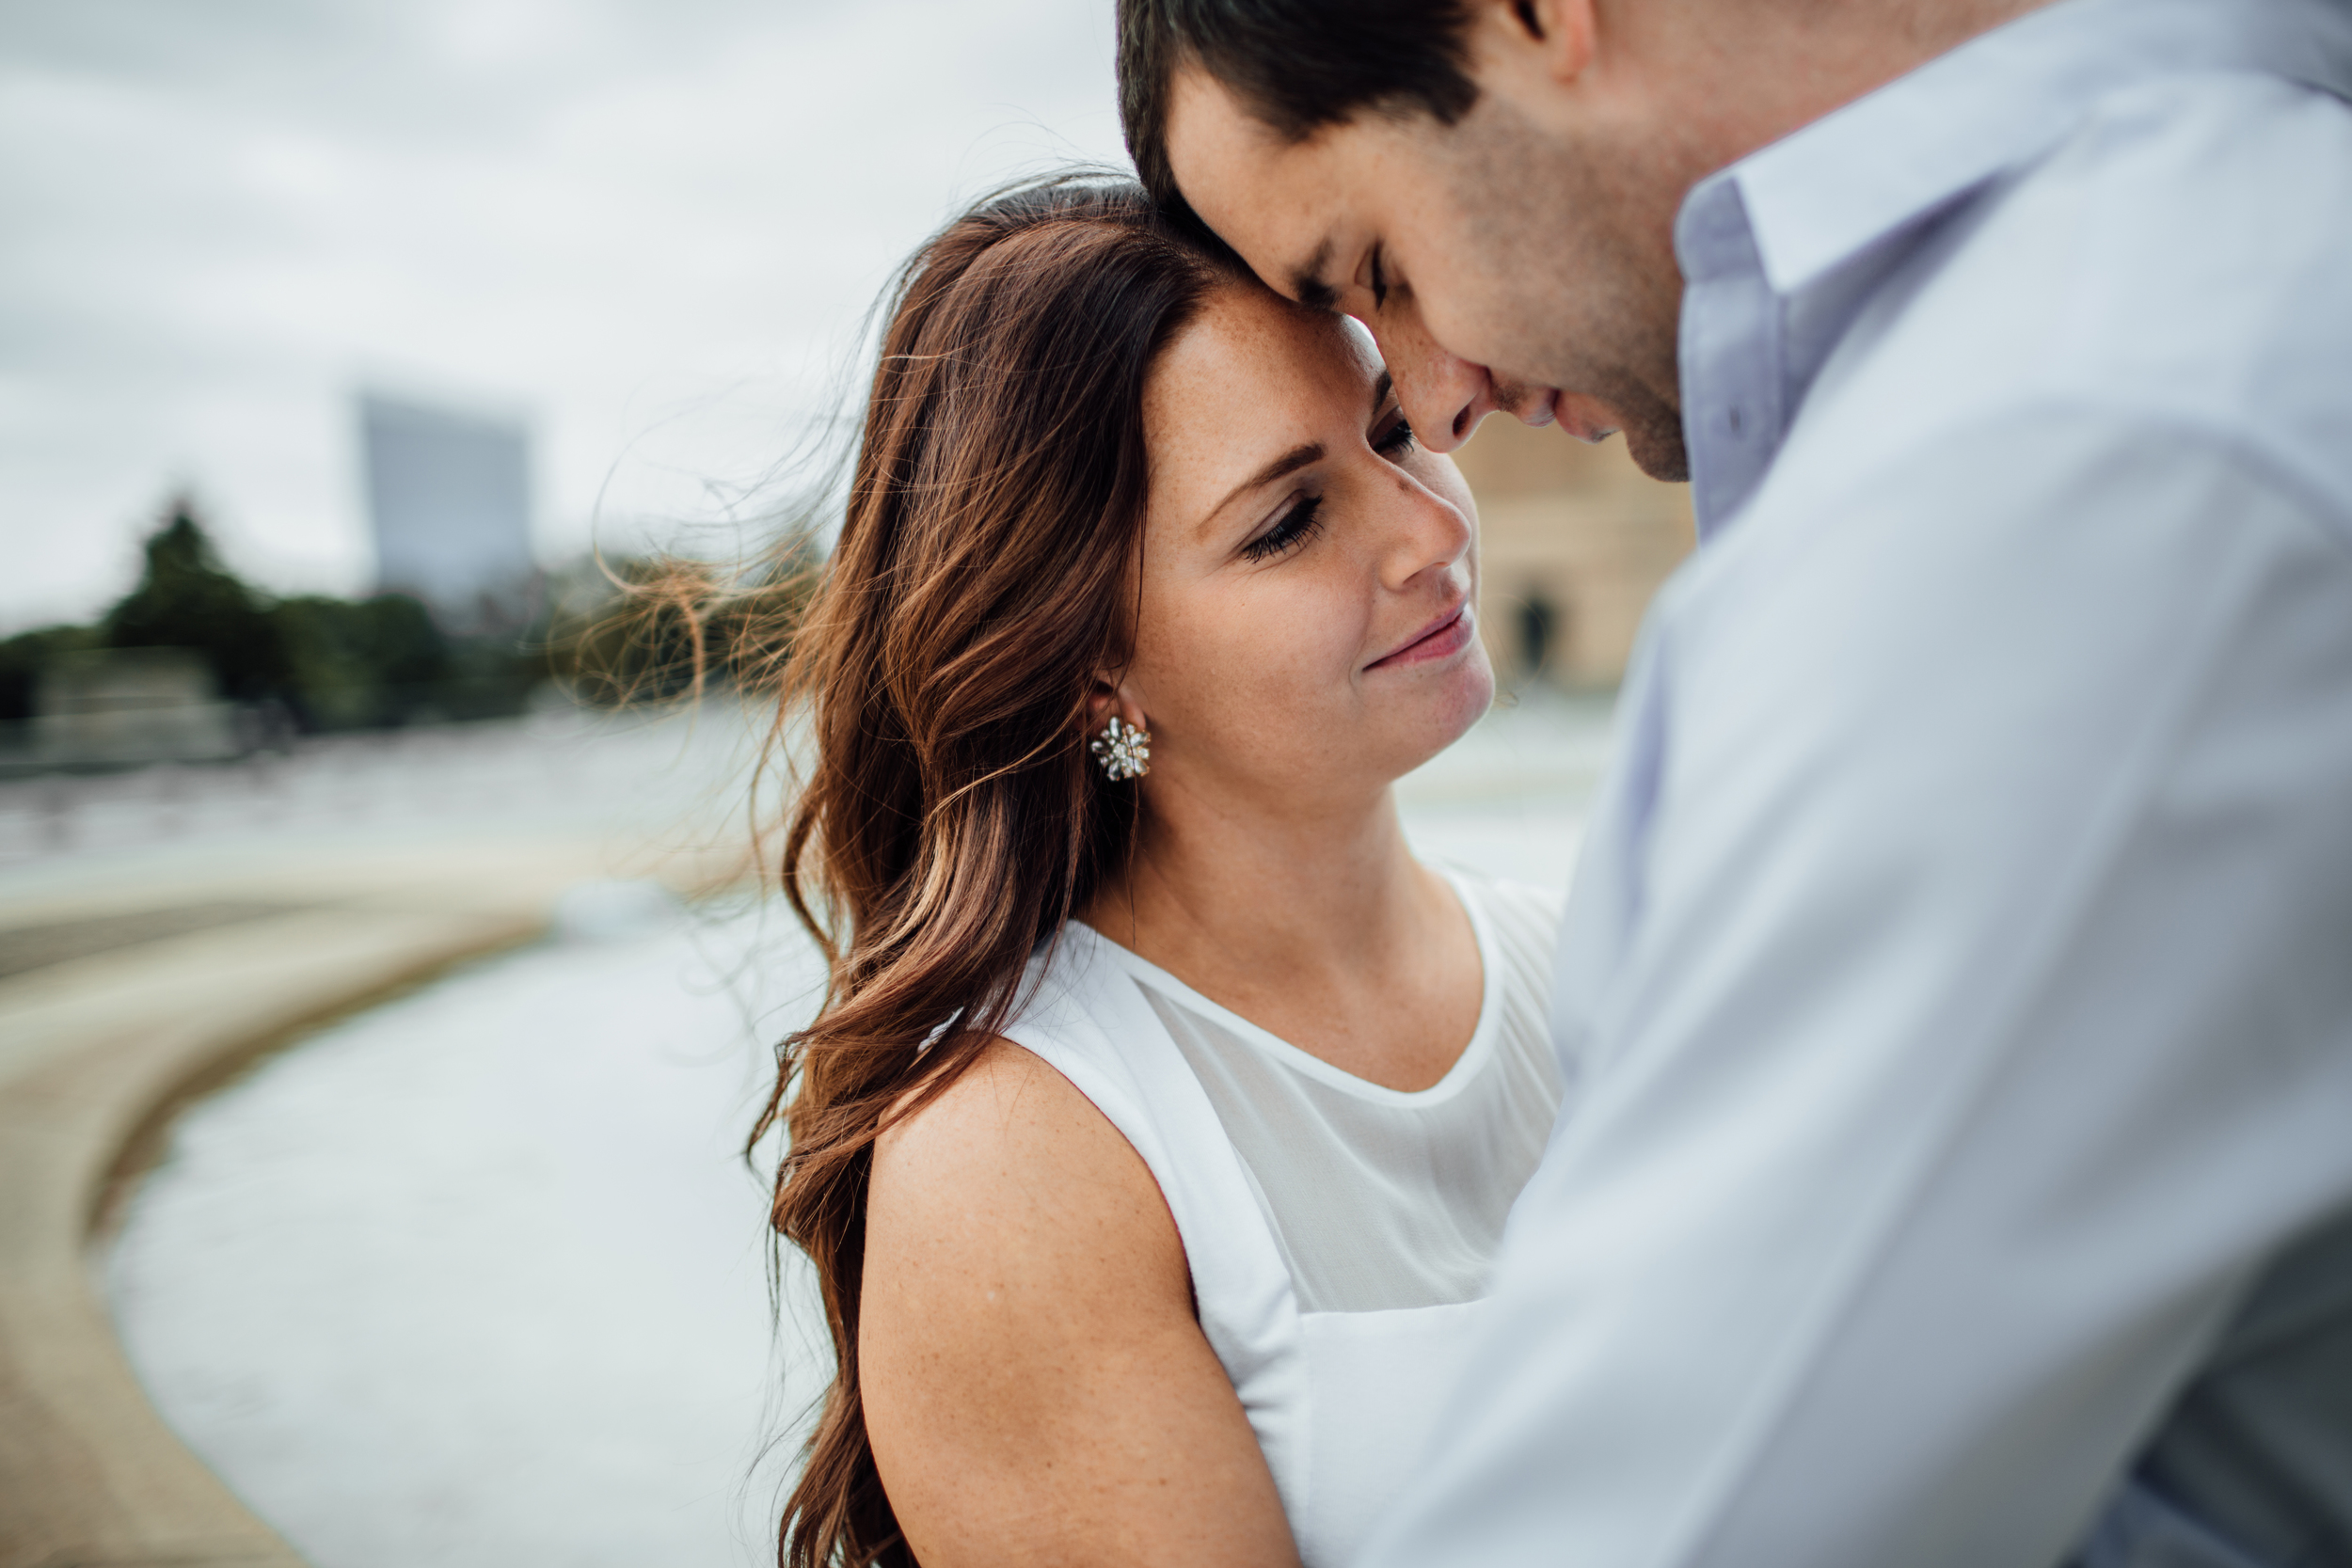 BRITTANYandKEVIN-Engagement2015 (90 of 115).jpg